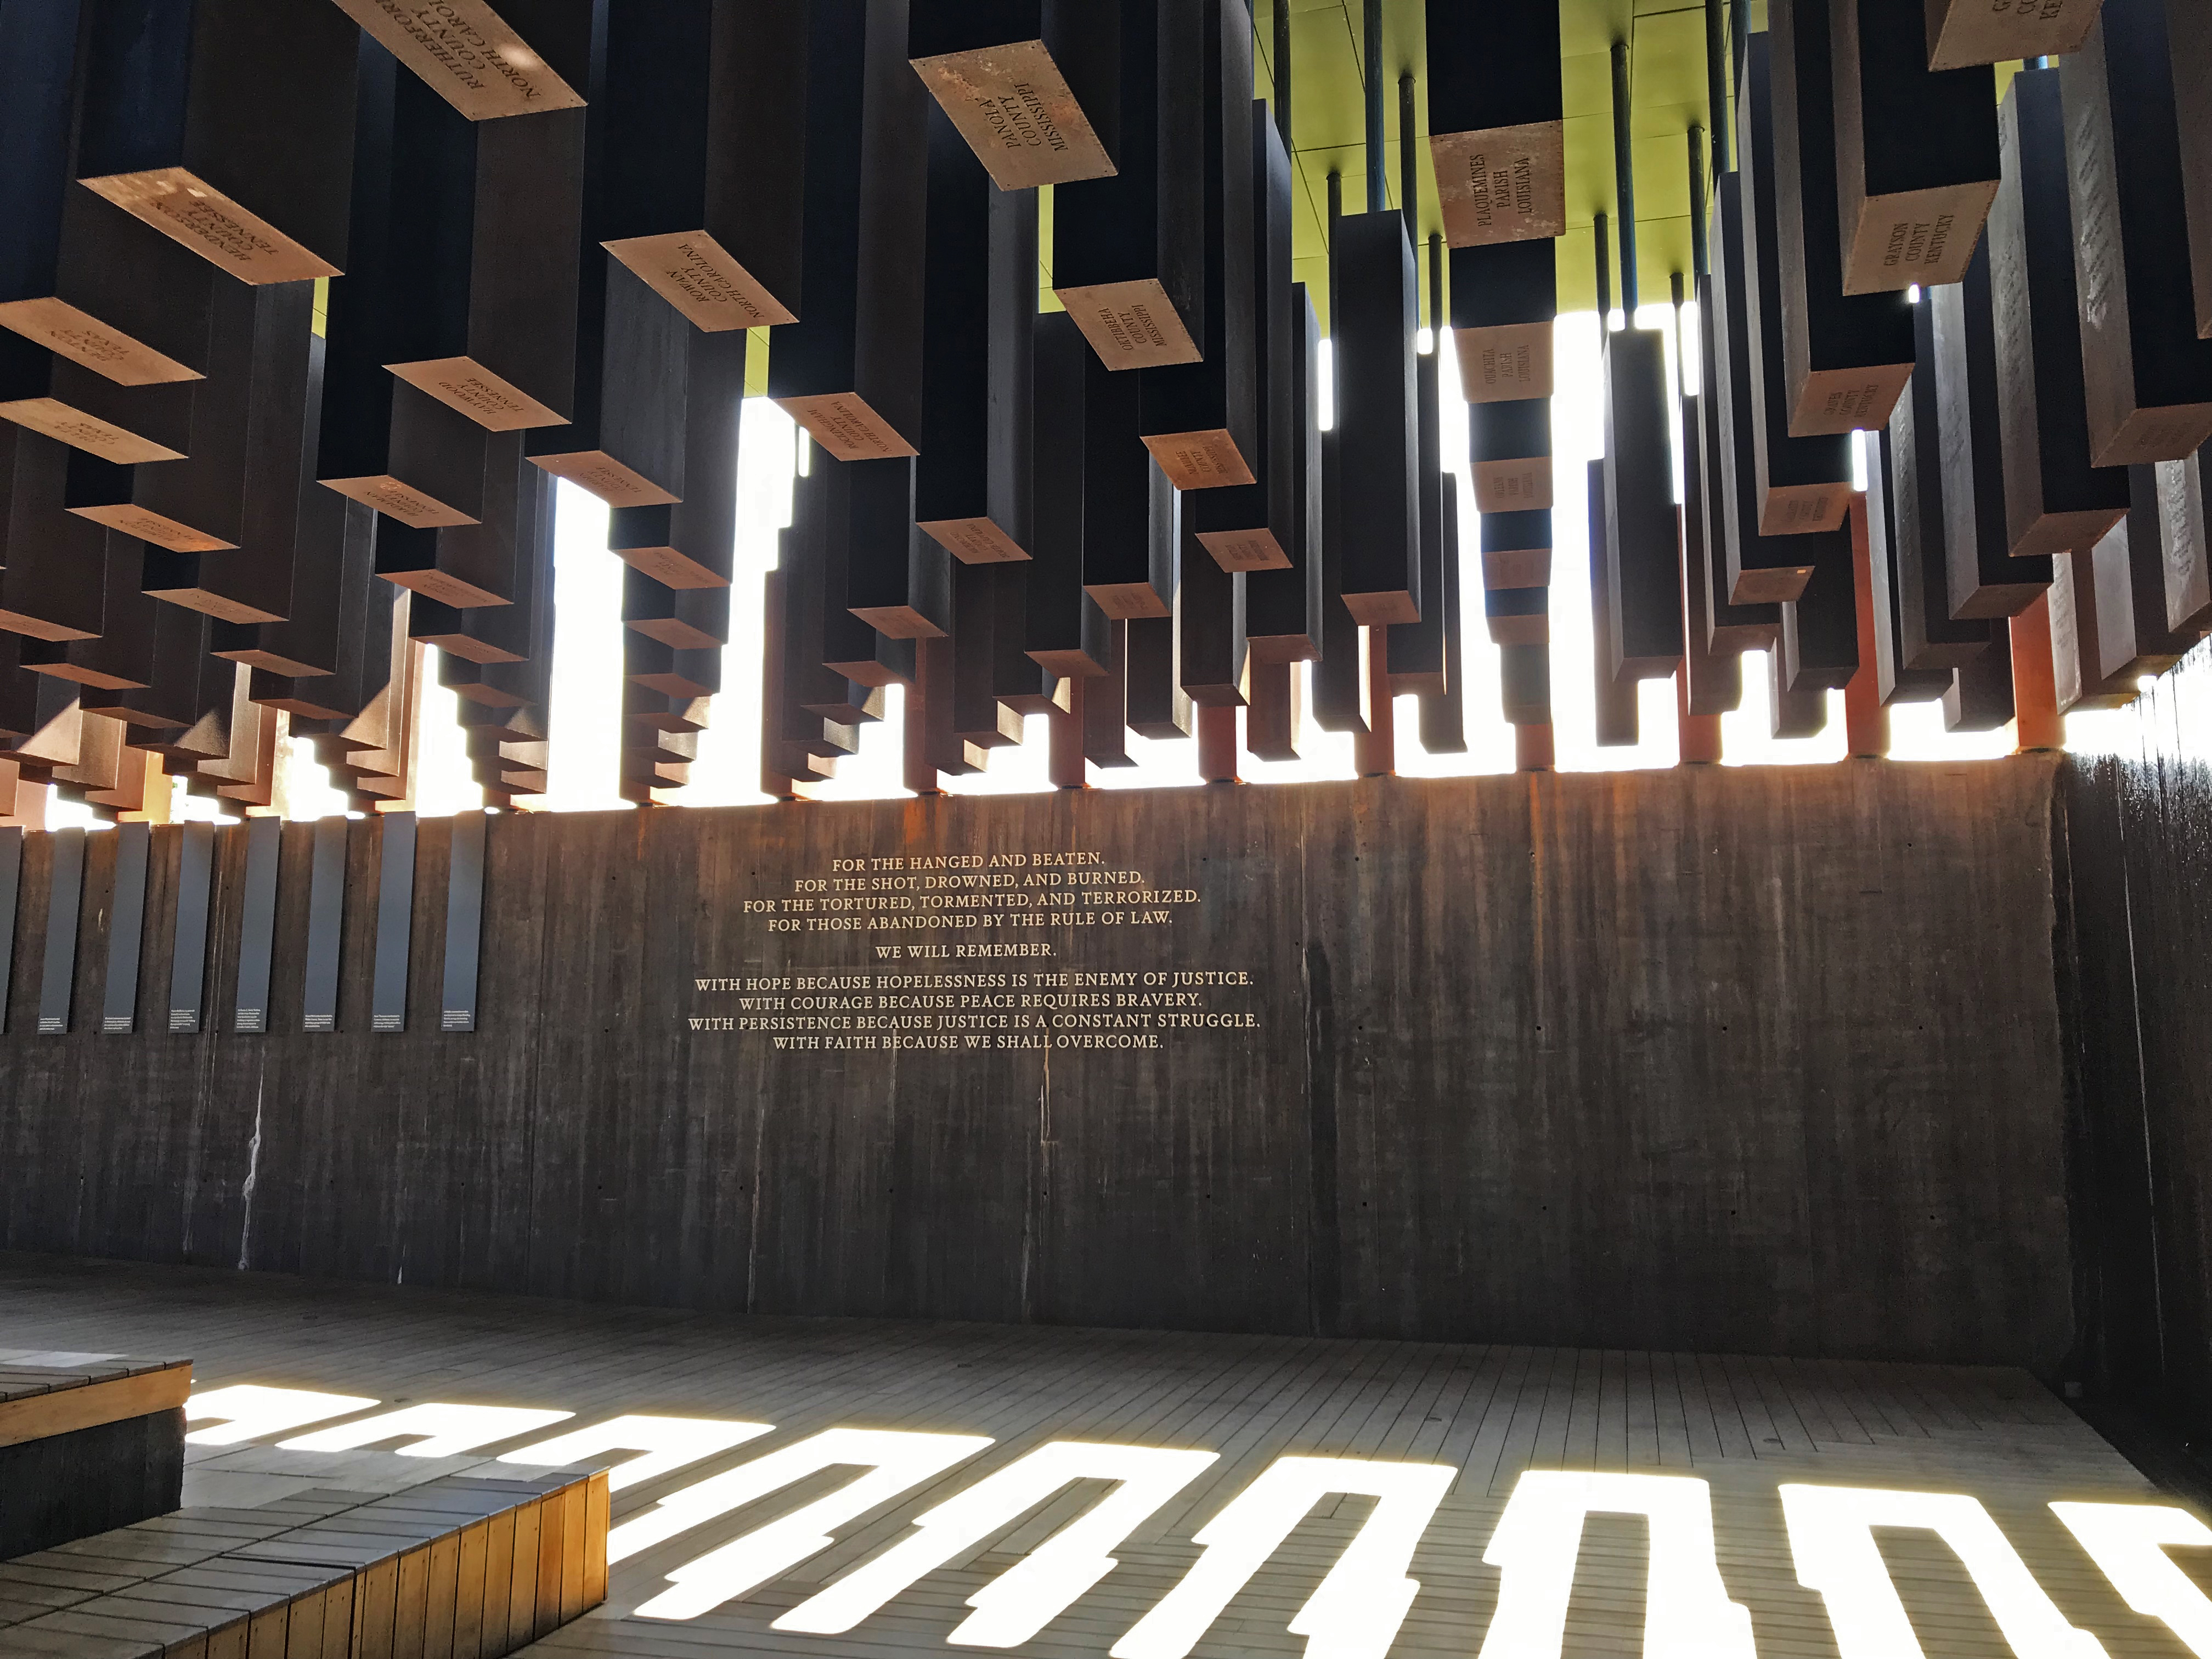 National Memorial for Peace and Justice in Montgomery, Alabama